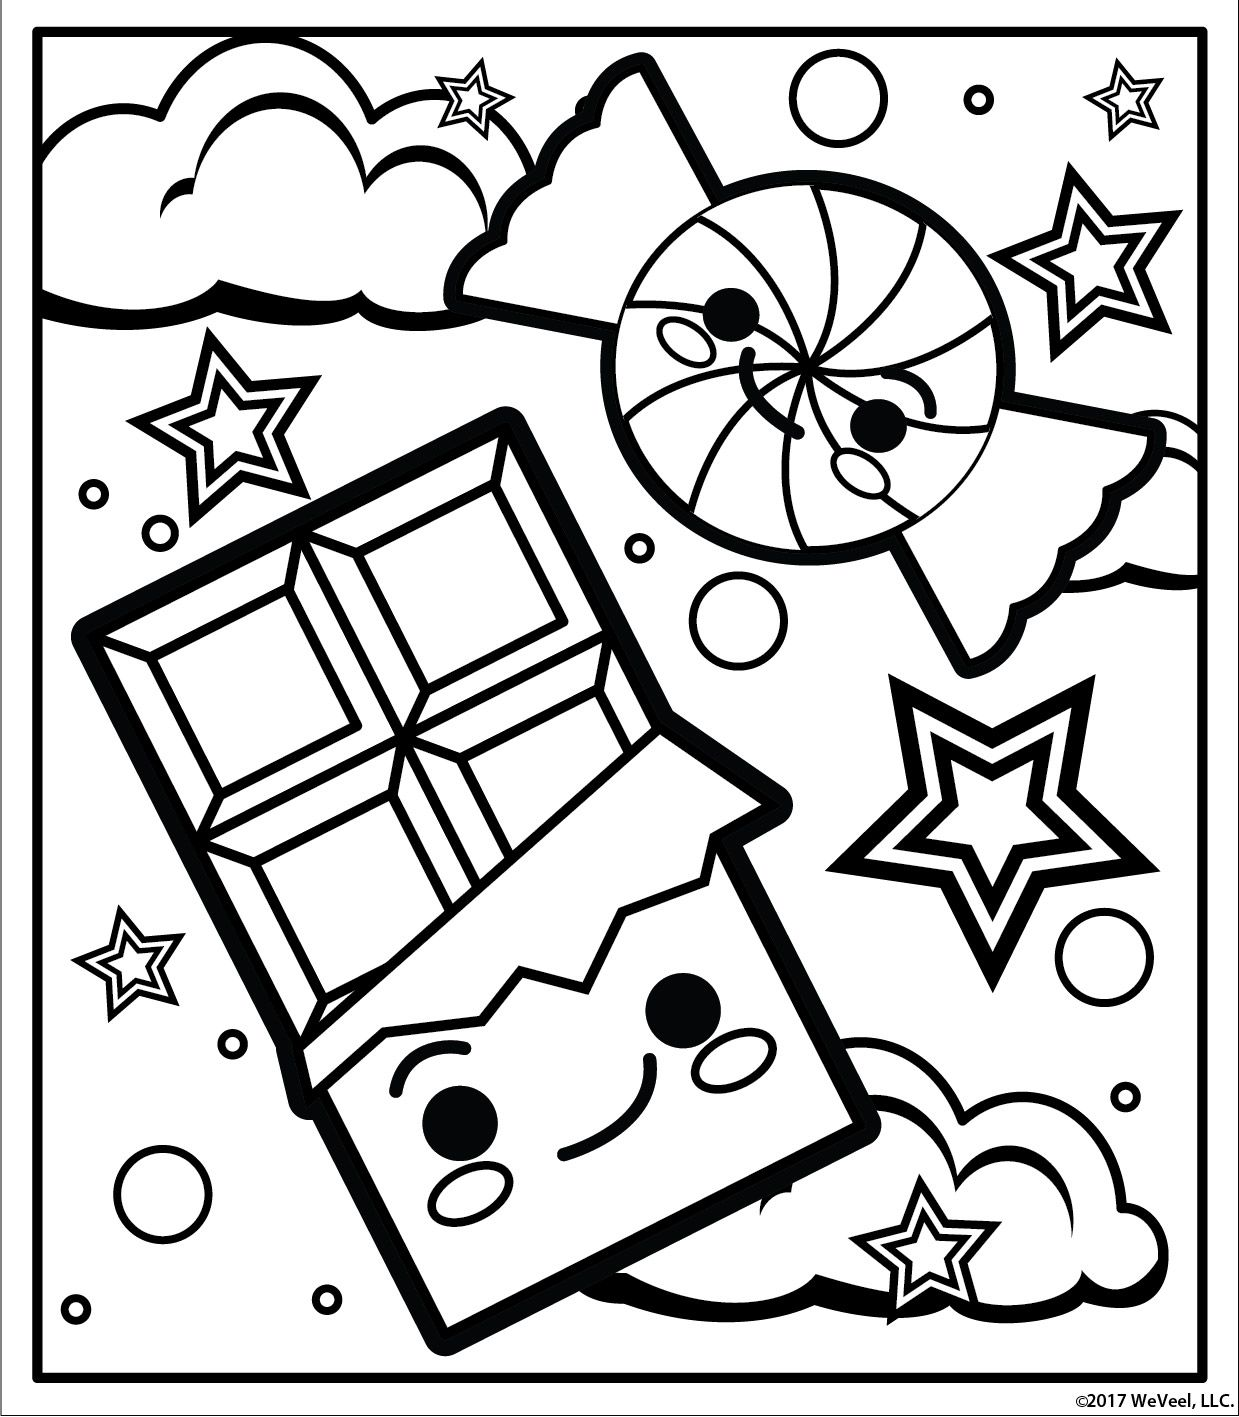 Free Printable Coloring Pages At Scentos Com Cute Girl Coloring Pages To Download And Print Puppy Coloring Pages Free Kids Coloring Pages Candy Coloring Pages